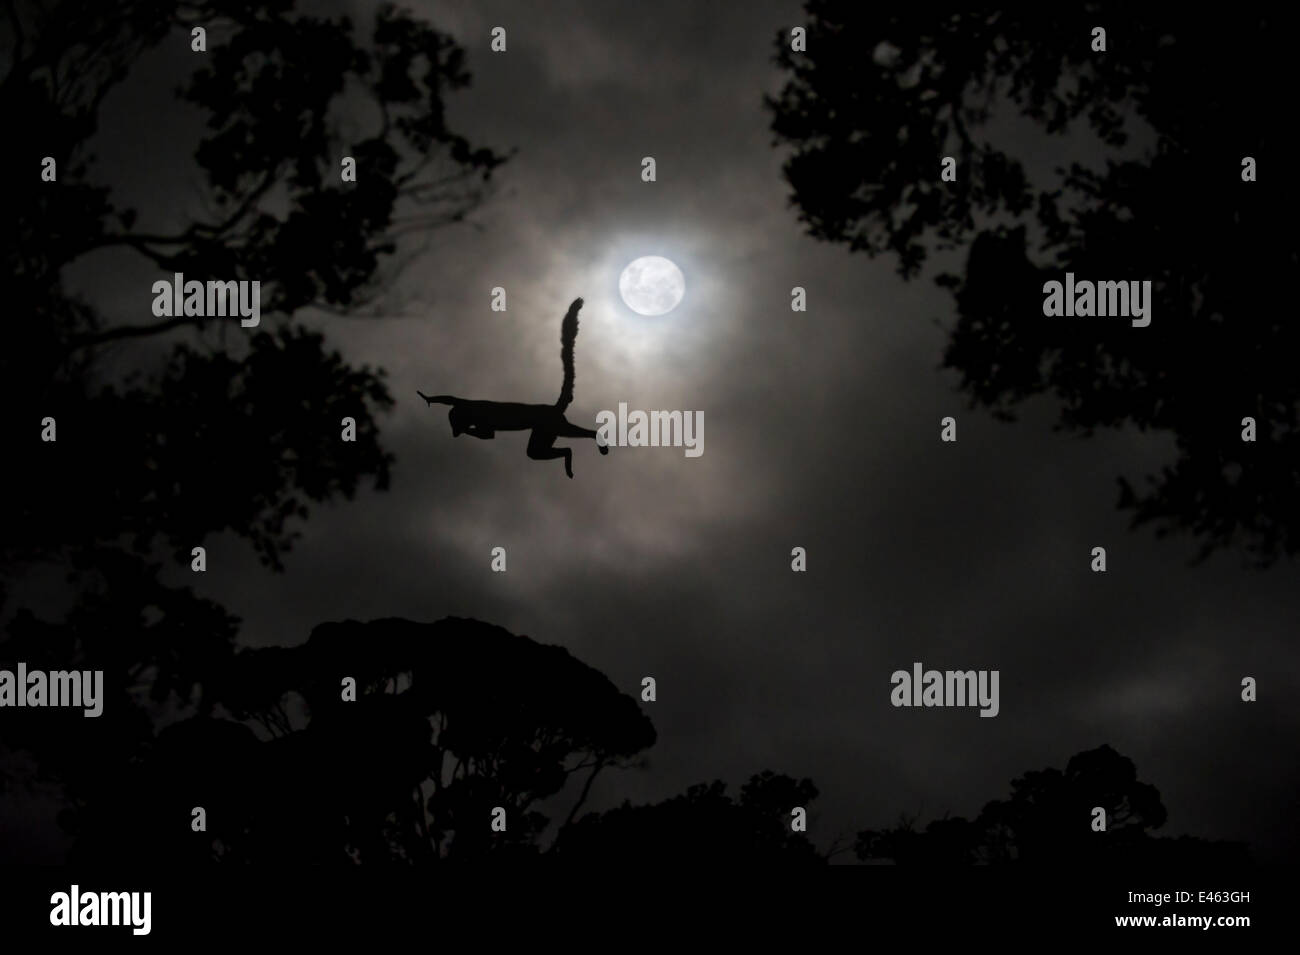 Silhouette of Red-fronted brown lemur (Eulemur rufus) leaping across gap in trees by moonlight, cathemeral behaviour, - Stock Image